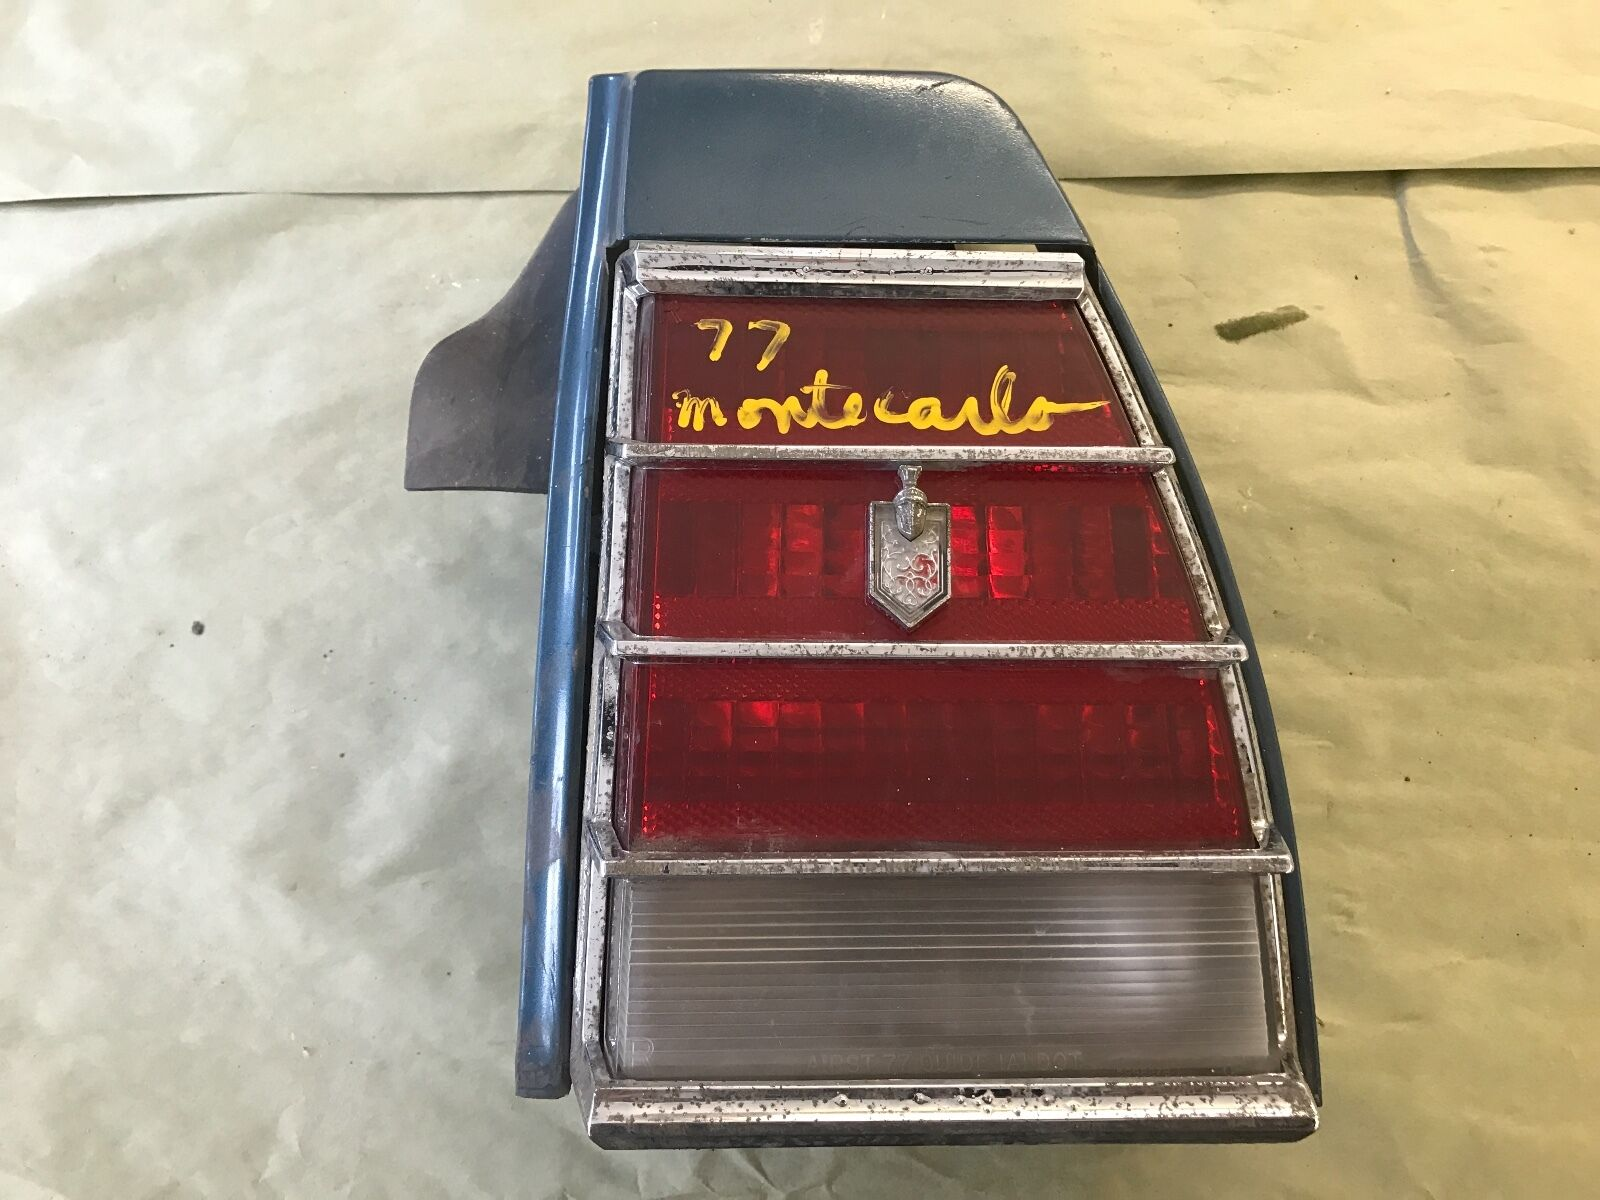 1977 chevrolet monte carlo RH tail light assembly with 1/4 panel extension blue